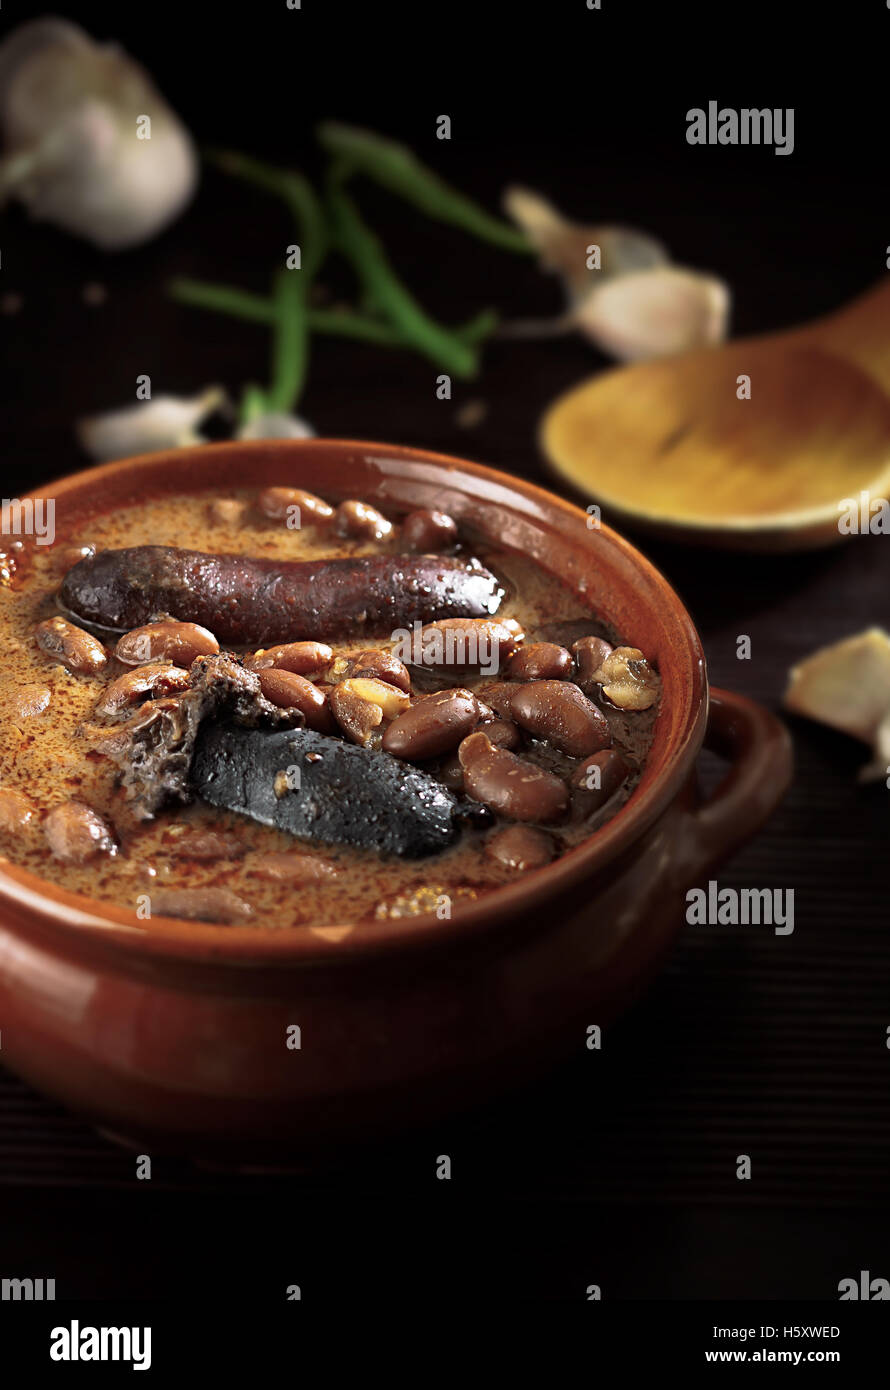 Spanish fabada with Black pudding and sausage in an earthenware dish on rustic background Stock Photo